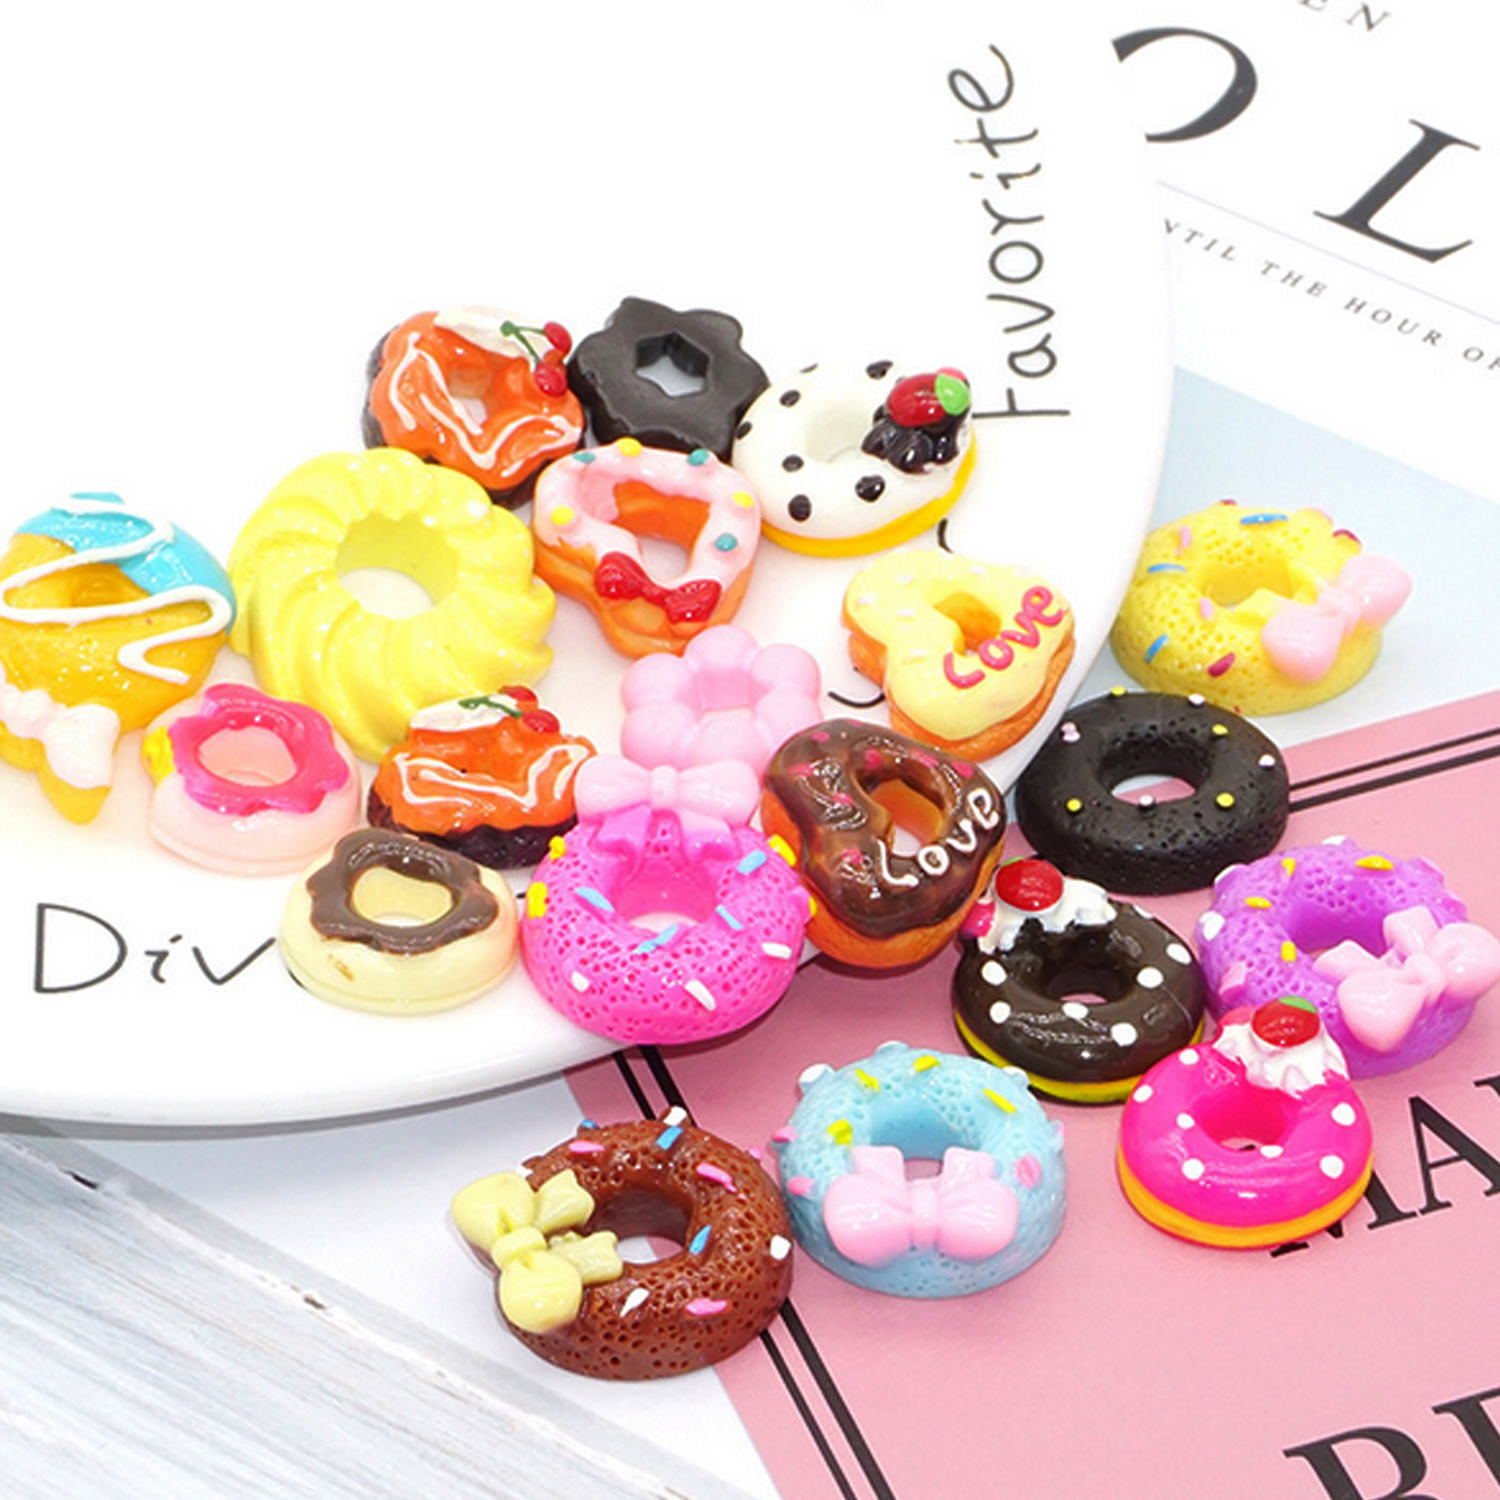 Besegad 10PCS Simulated Kawaii Miniature Mini Resin Foods Toy Accessories for Barbie Children Girls Birthday Gift Random Color button